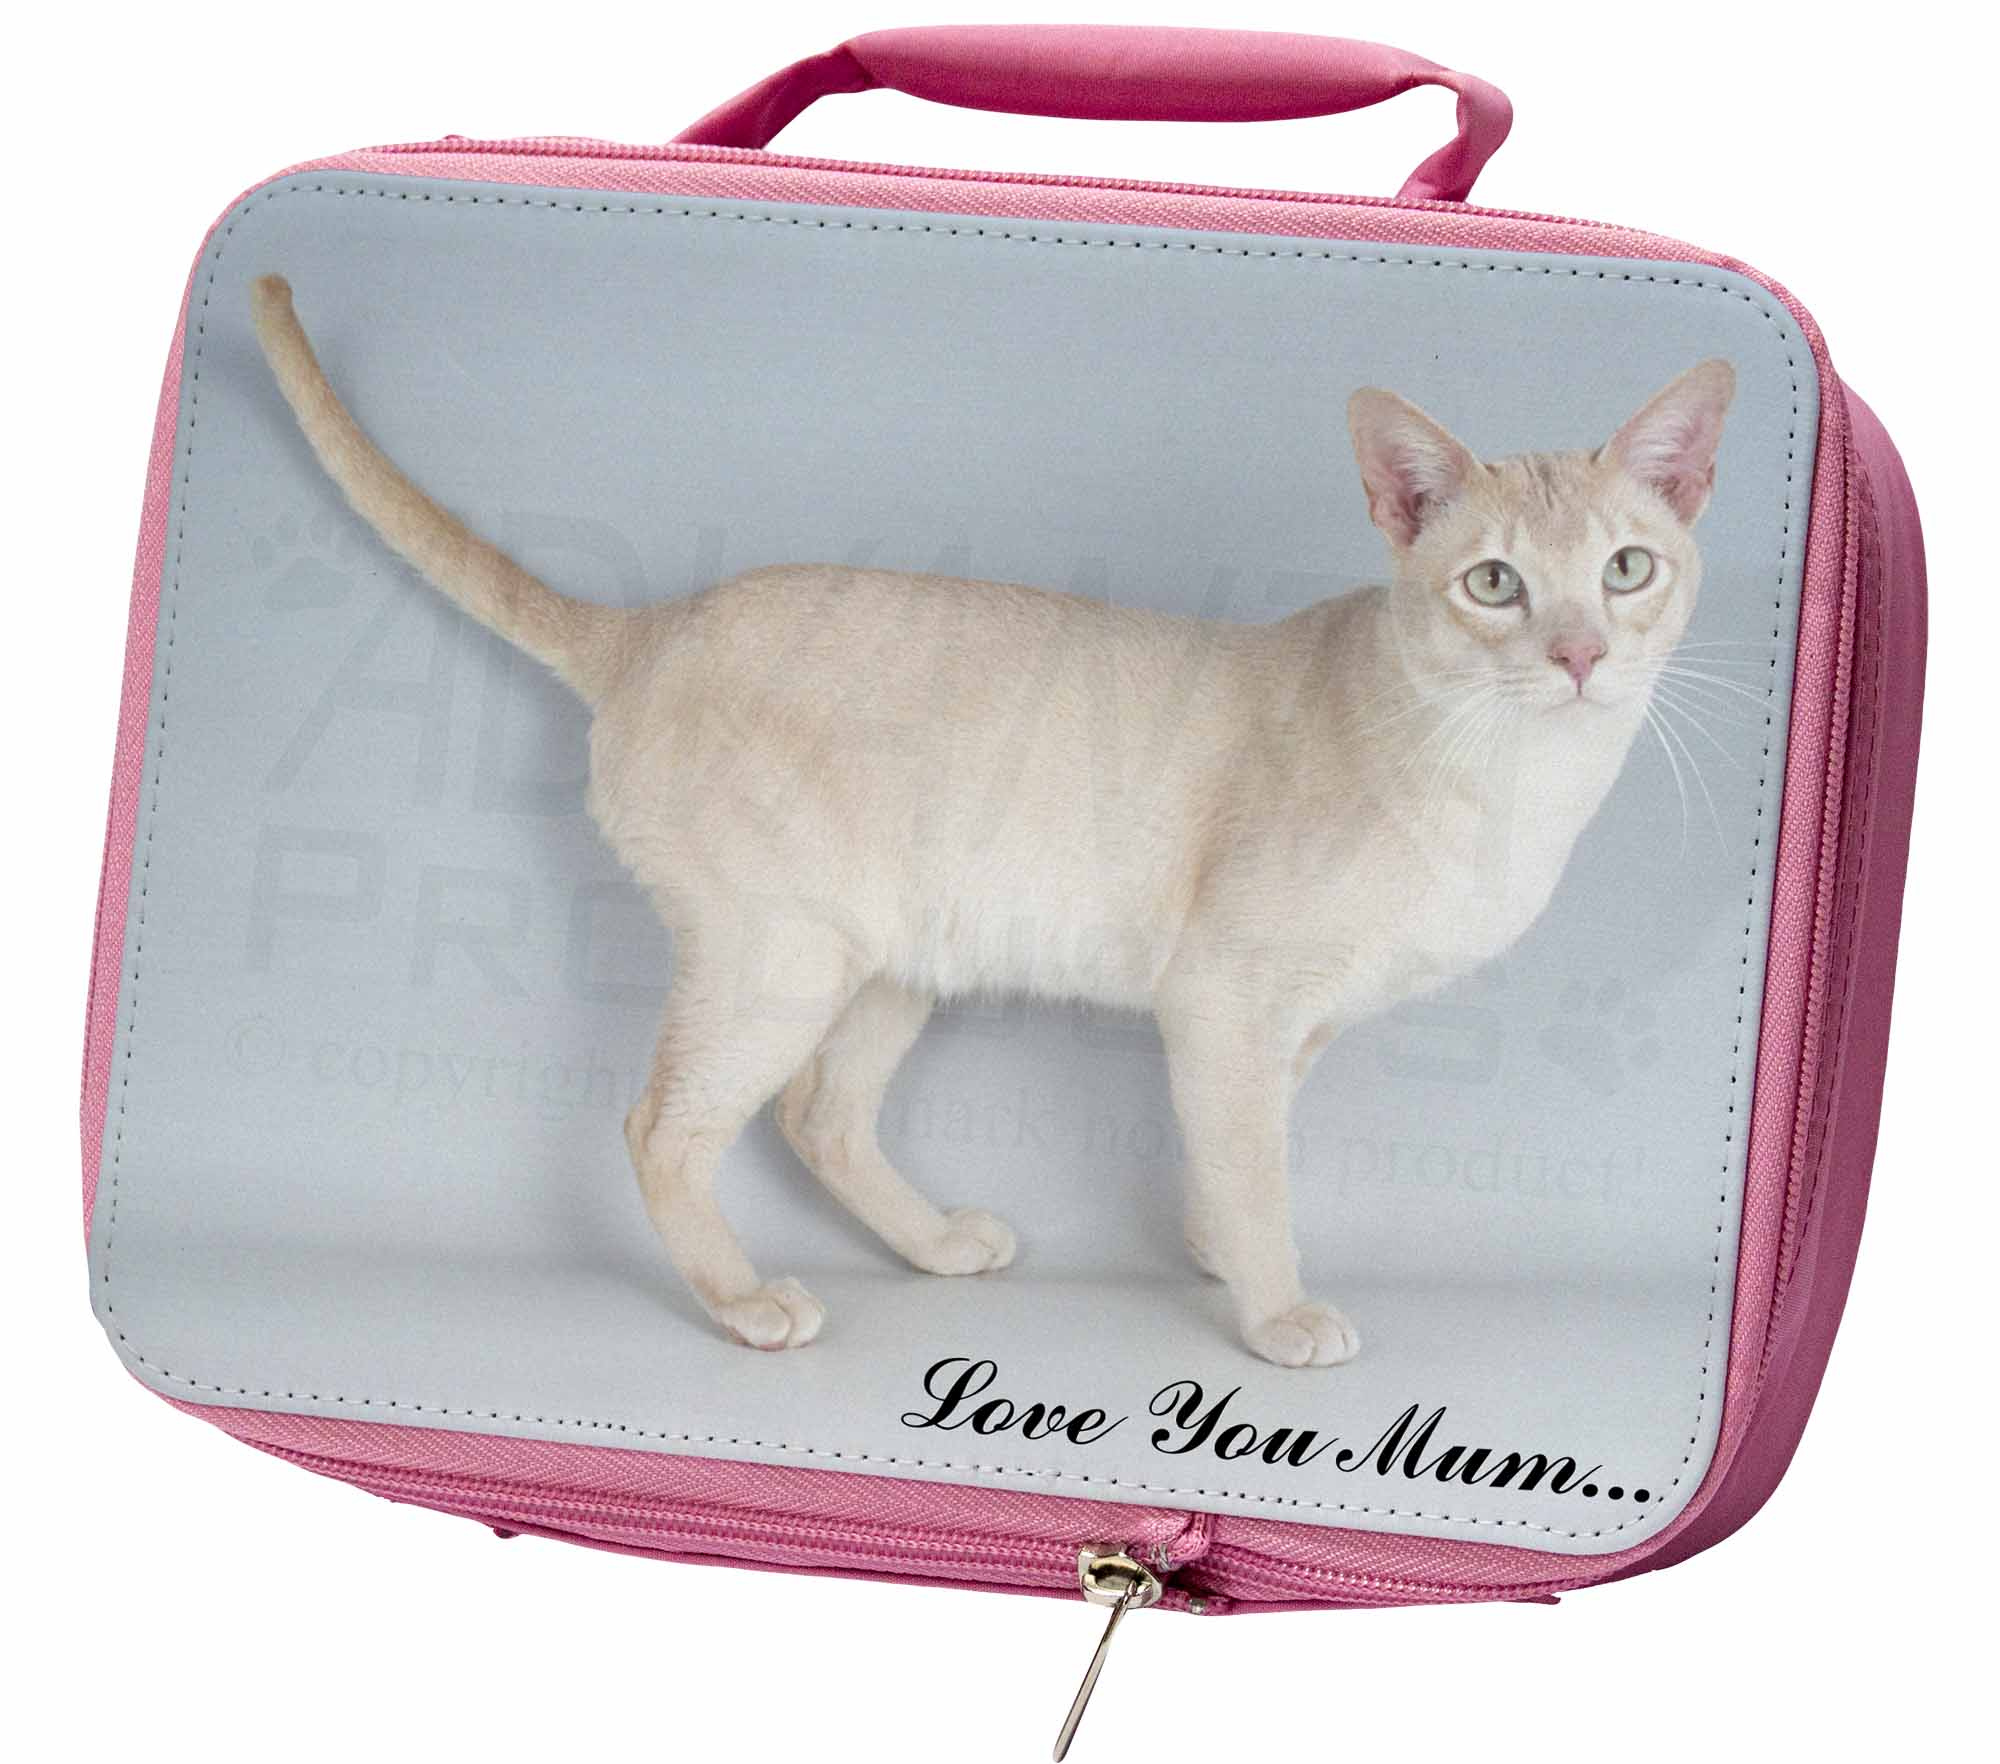 Tonkinese Cat 'Love You Mum' Insulated Pink School Lunch Box Bag, AC114lymLBP